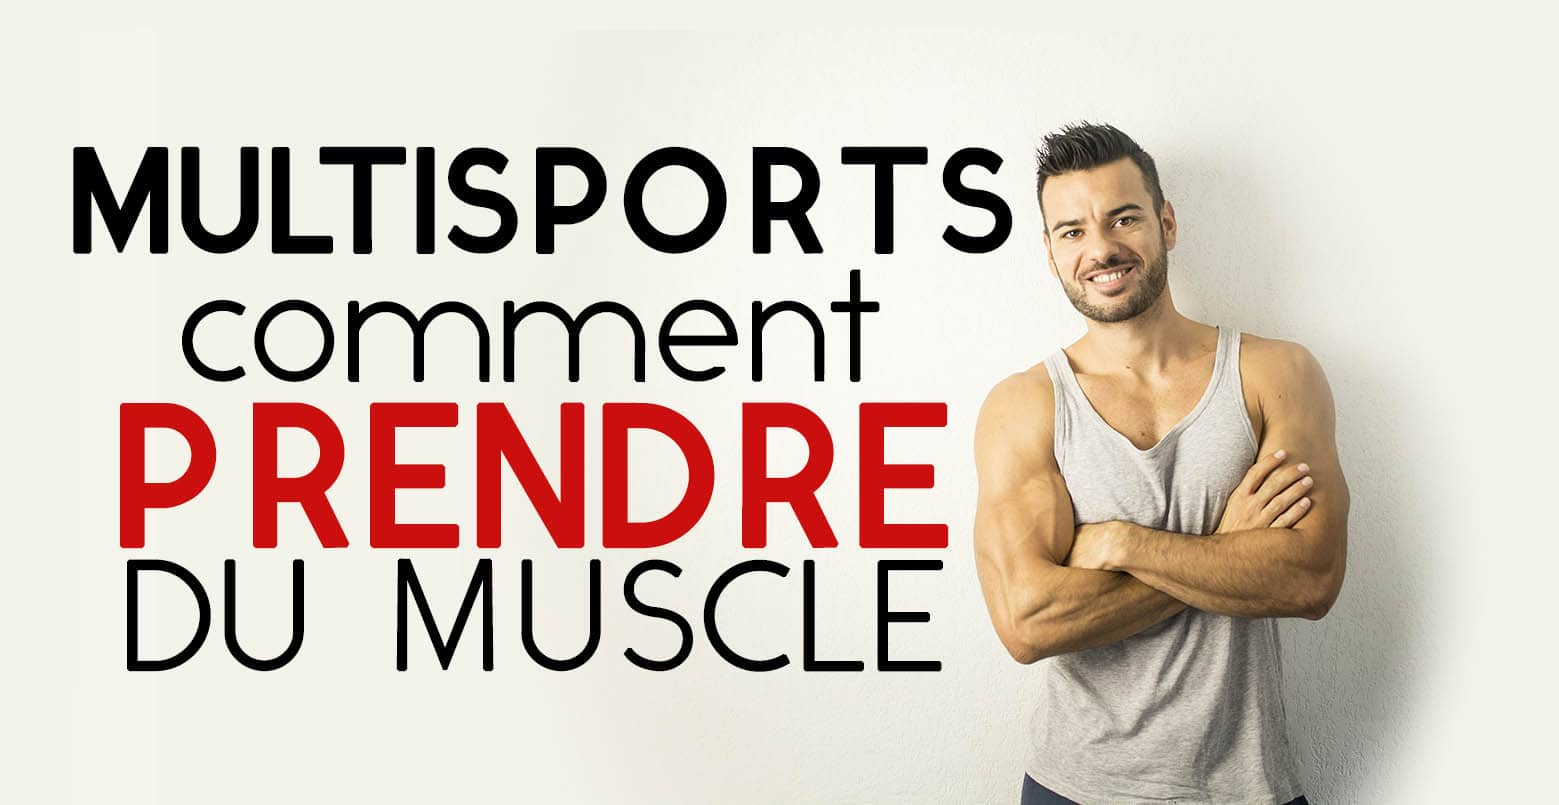 MUSCULATION ET MULTISPORTS